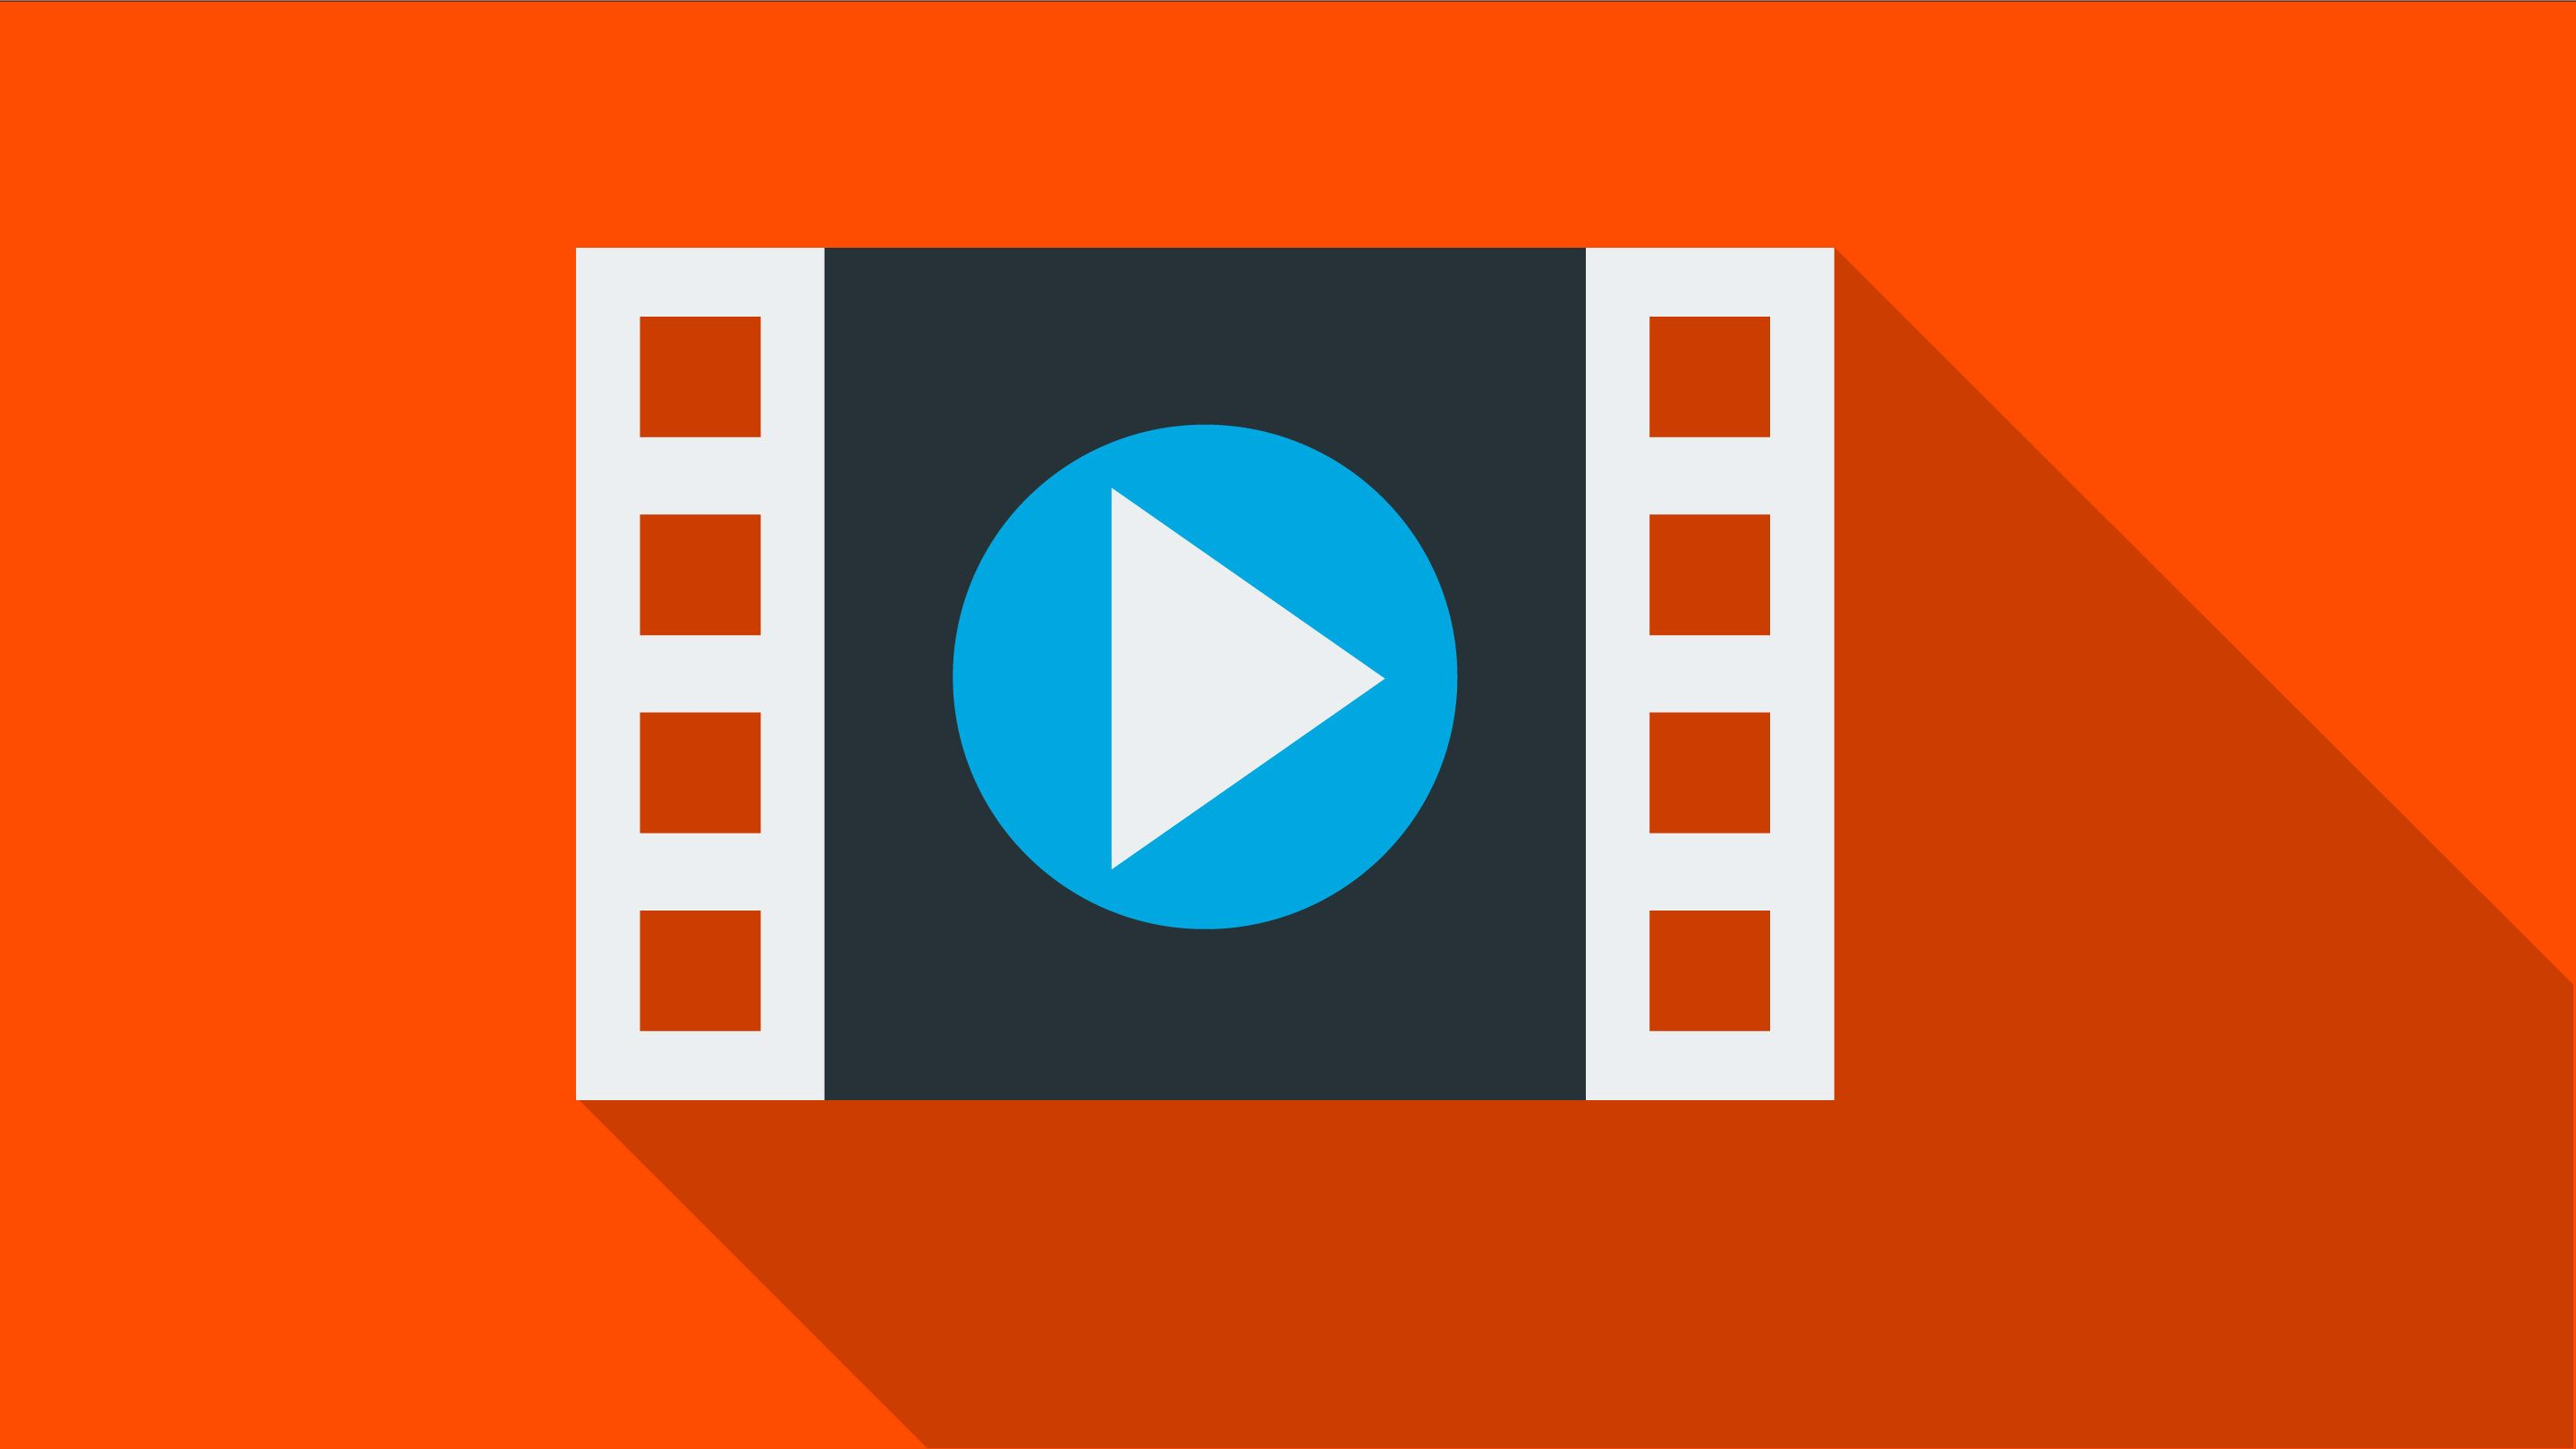 5-Minute Film Festival: 5 Videos to Explore Growth Mindset